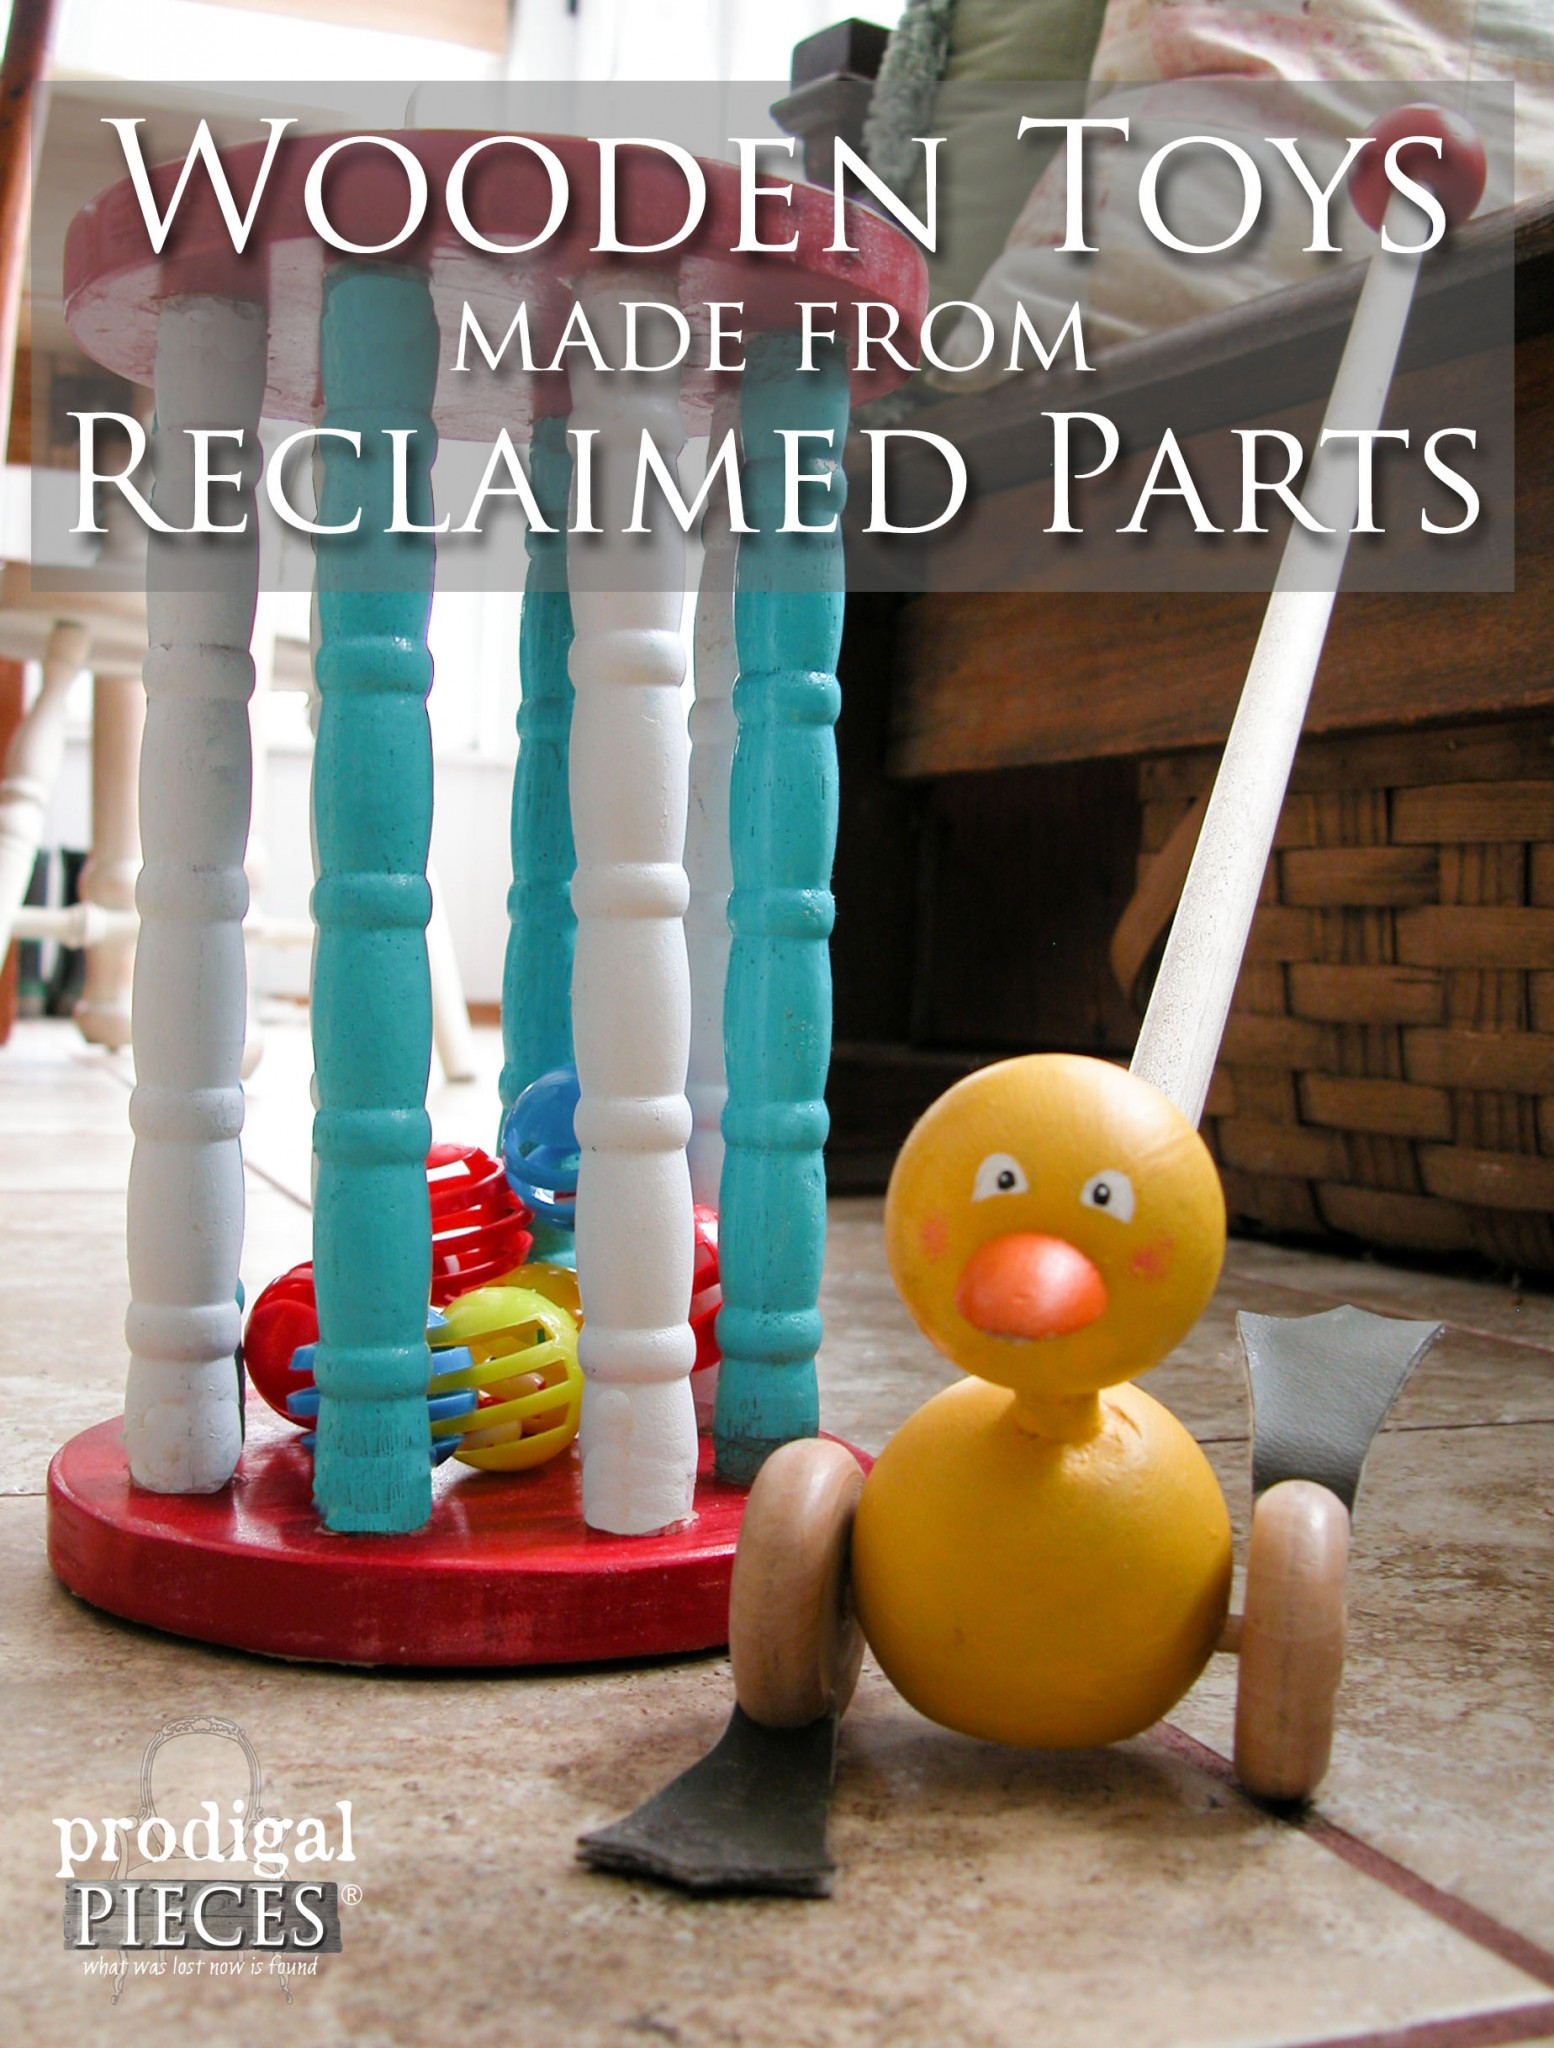 Classic Wooden Toys Made from Reclaimed Parts by Prodigal Pieces | prodigalpieces.com